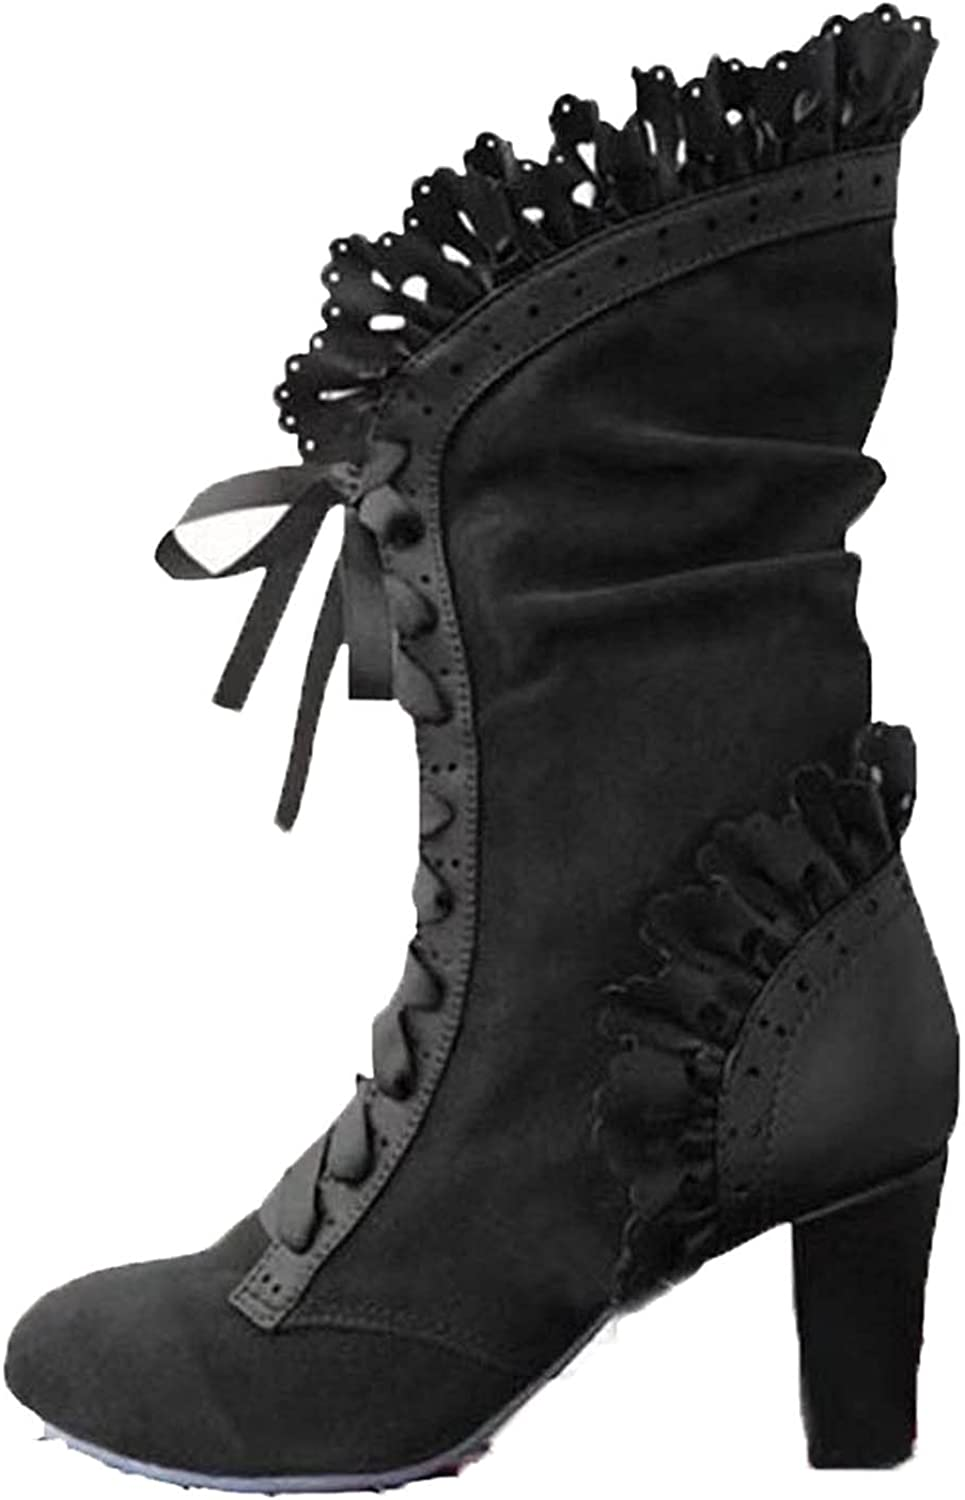 Erocalli Women Goth Boots Black Sweet Bow Mid Calf Boots Mid Heels Lace Up Studded Bowknot Witch Boot